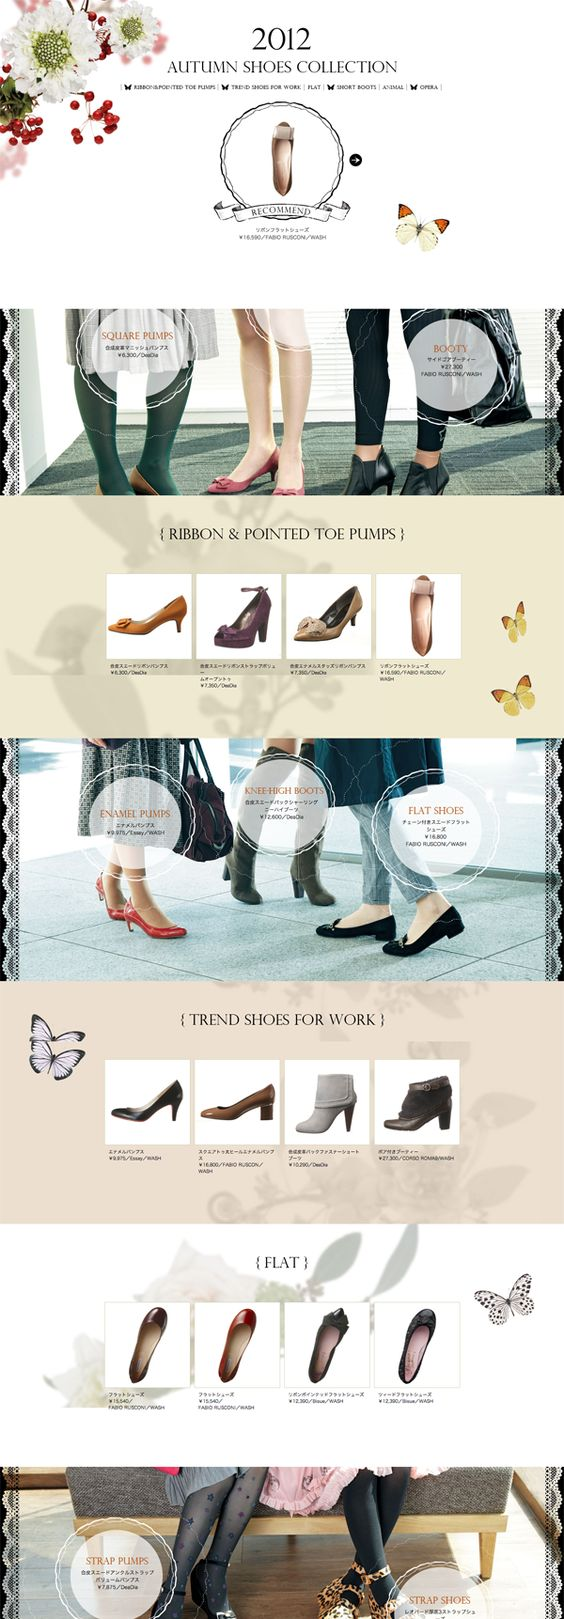 http://www.parco-city.com/special/12autumn_shoes_collection/